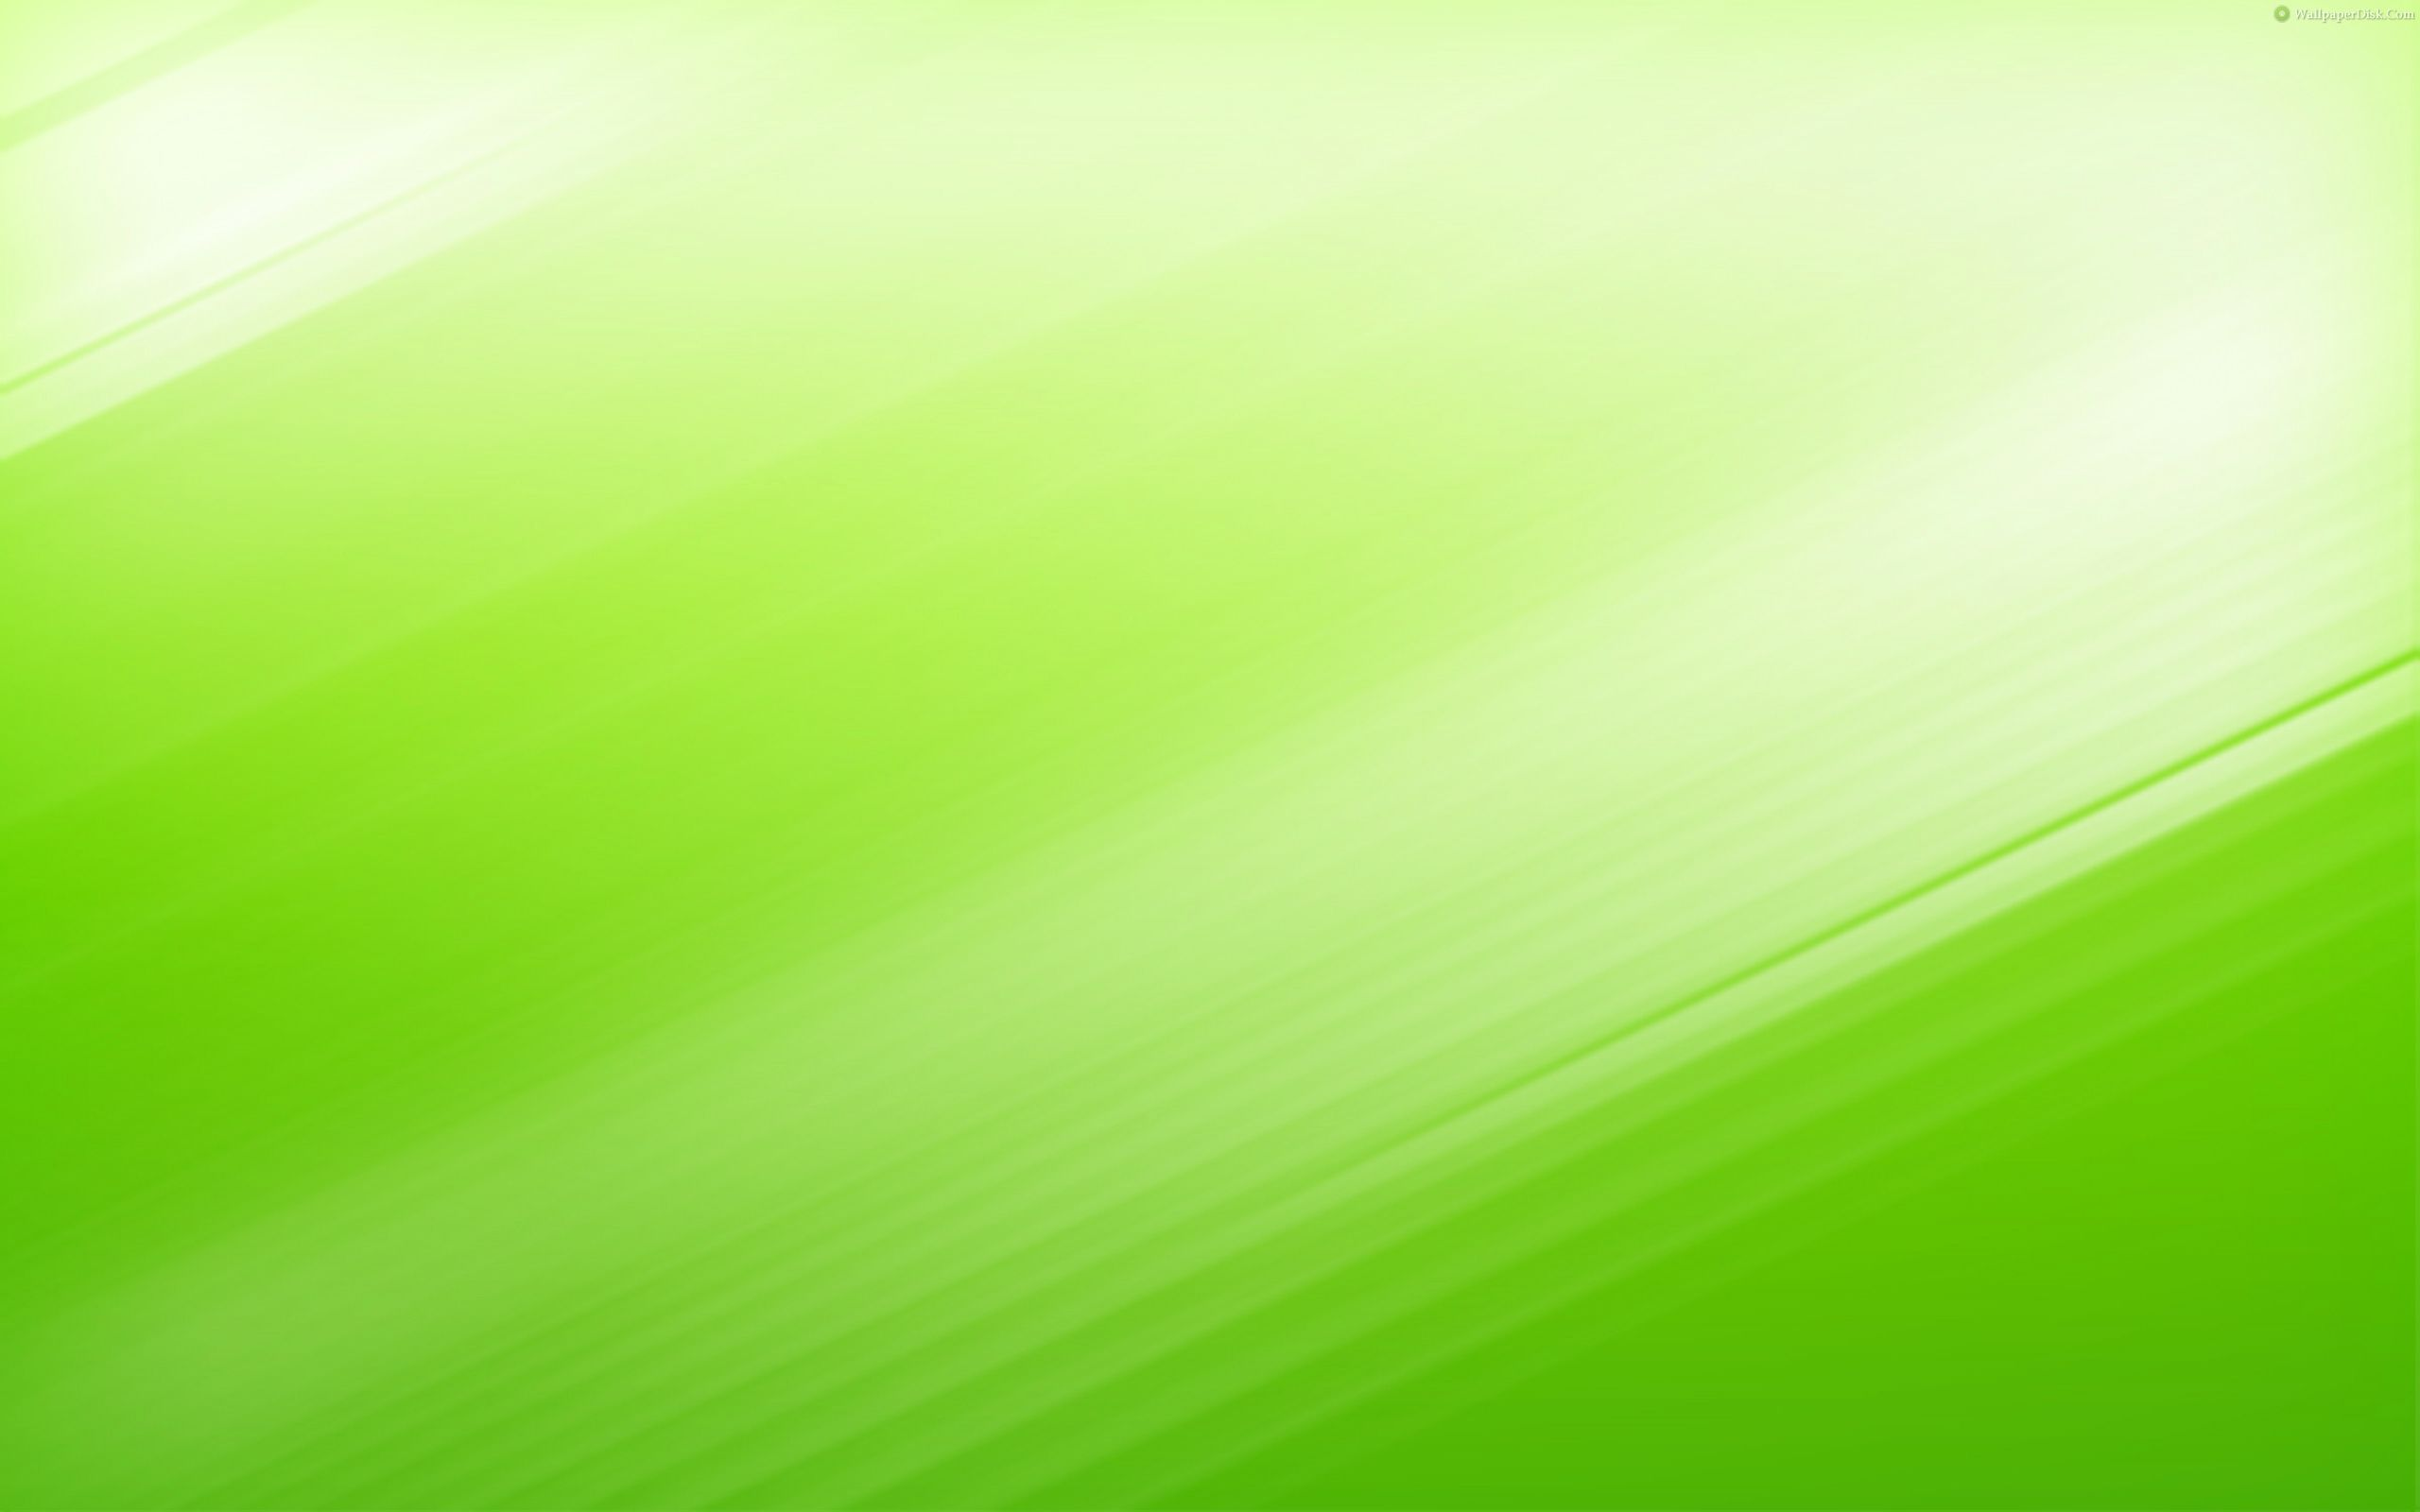 Green Background Wallpaper 2560x1600 57495